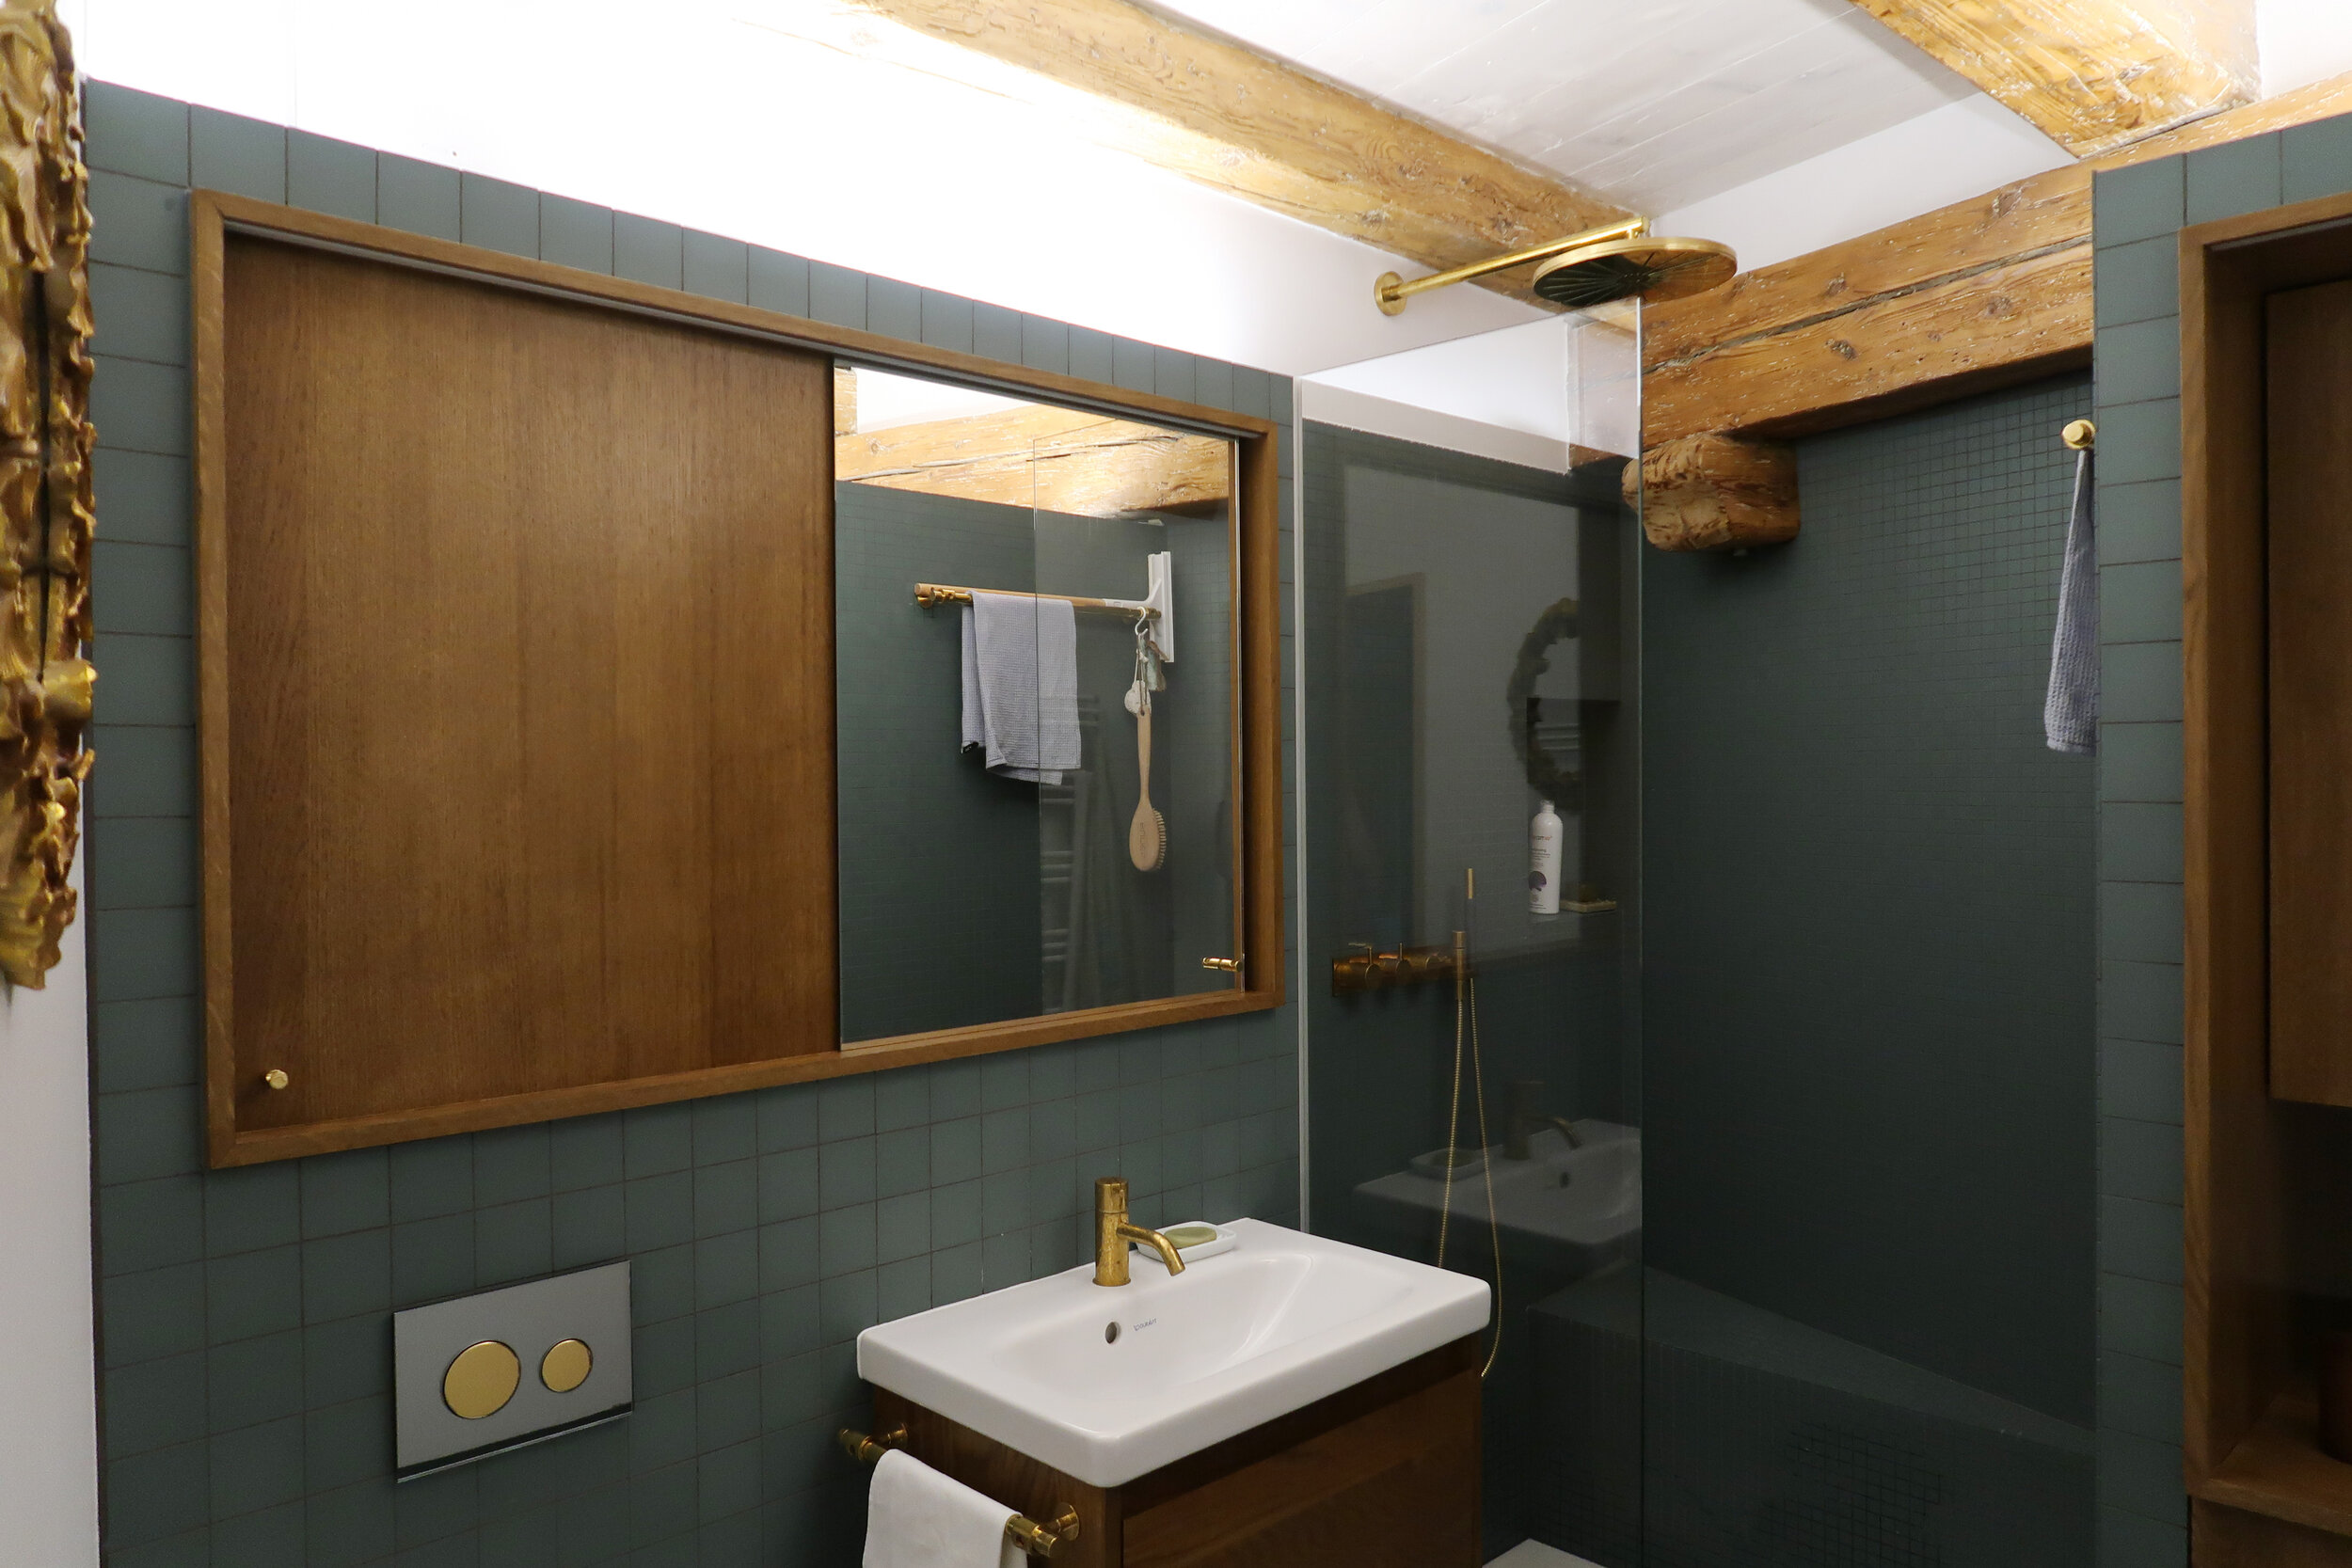 Graham worked with Jean-Michaël (jean-michael.taillebois@sunrise.ch) to help develop this beautiful bathroom.